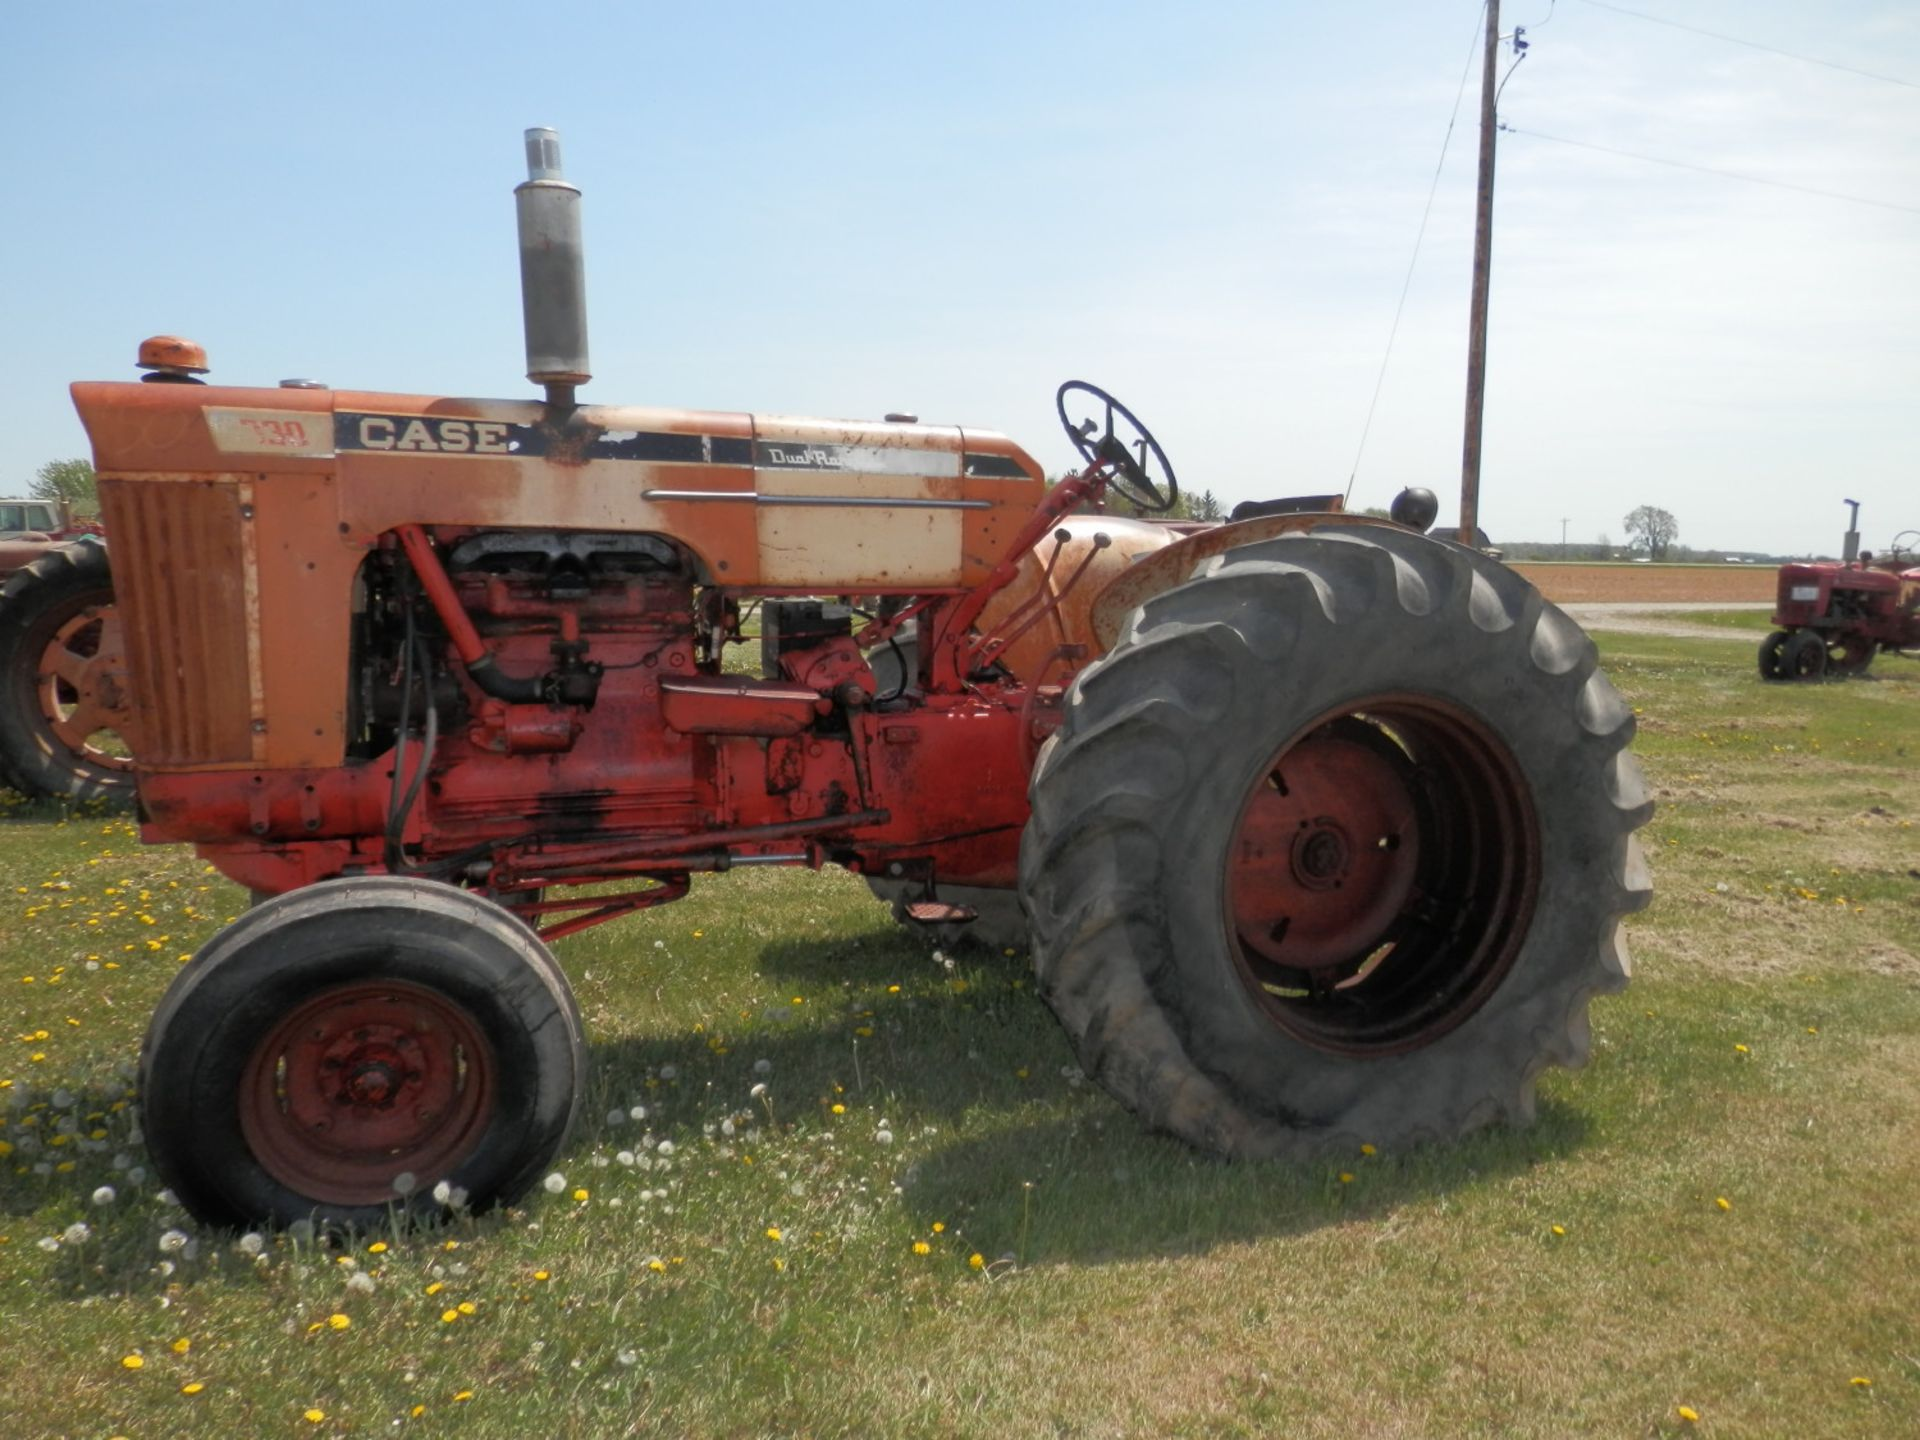 JI CASE 730 GAS TRACTOR - Image 5 of 10